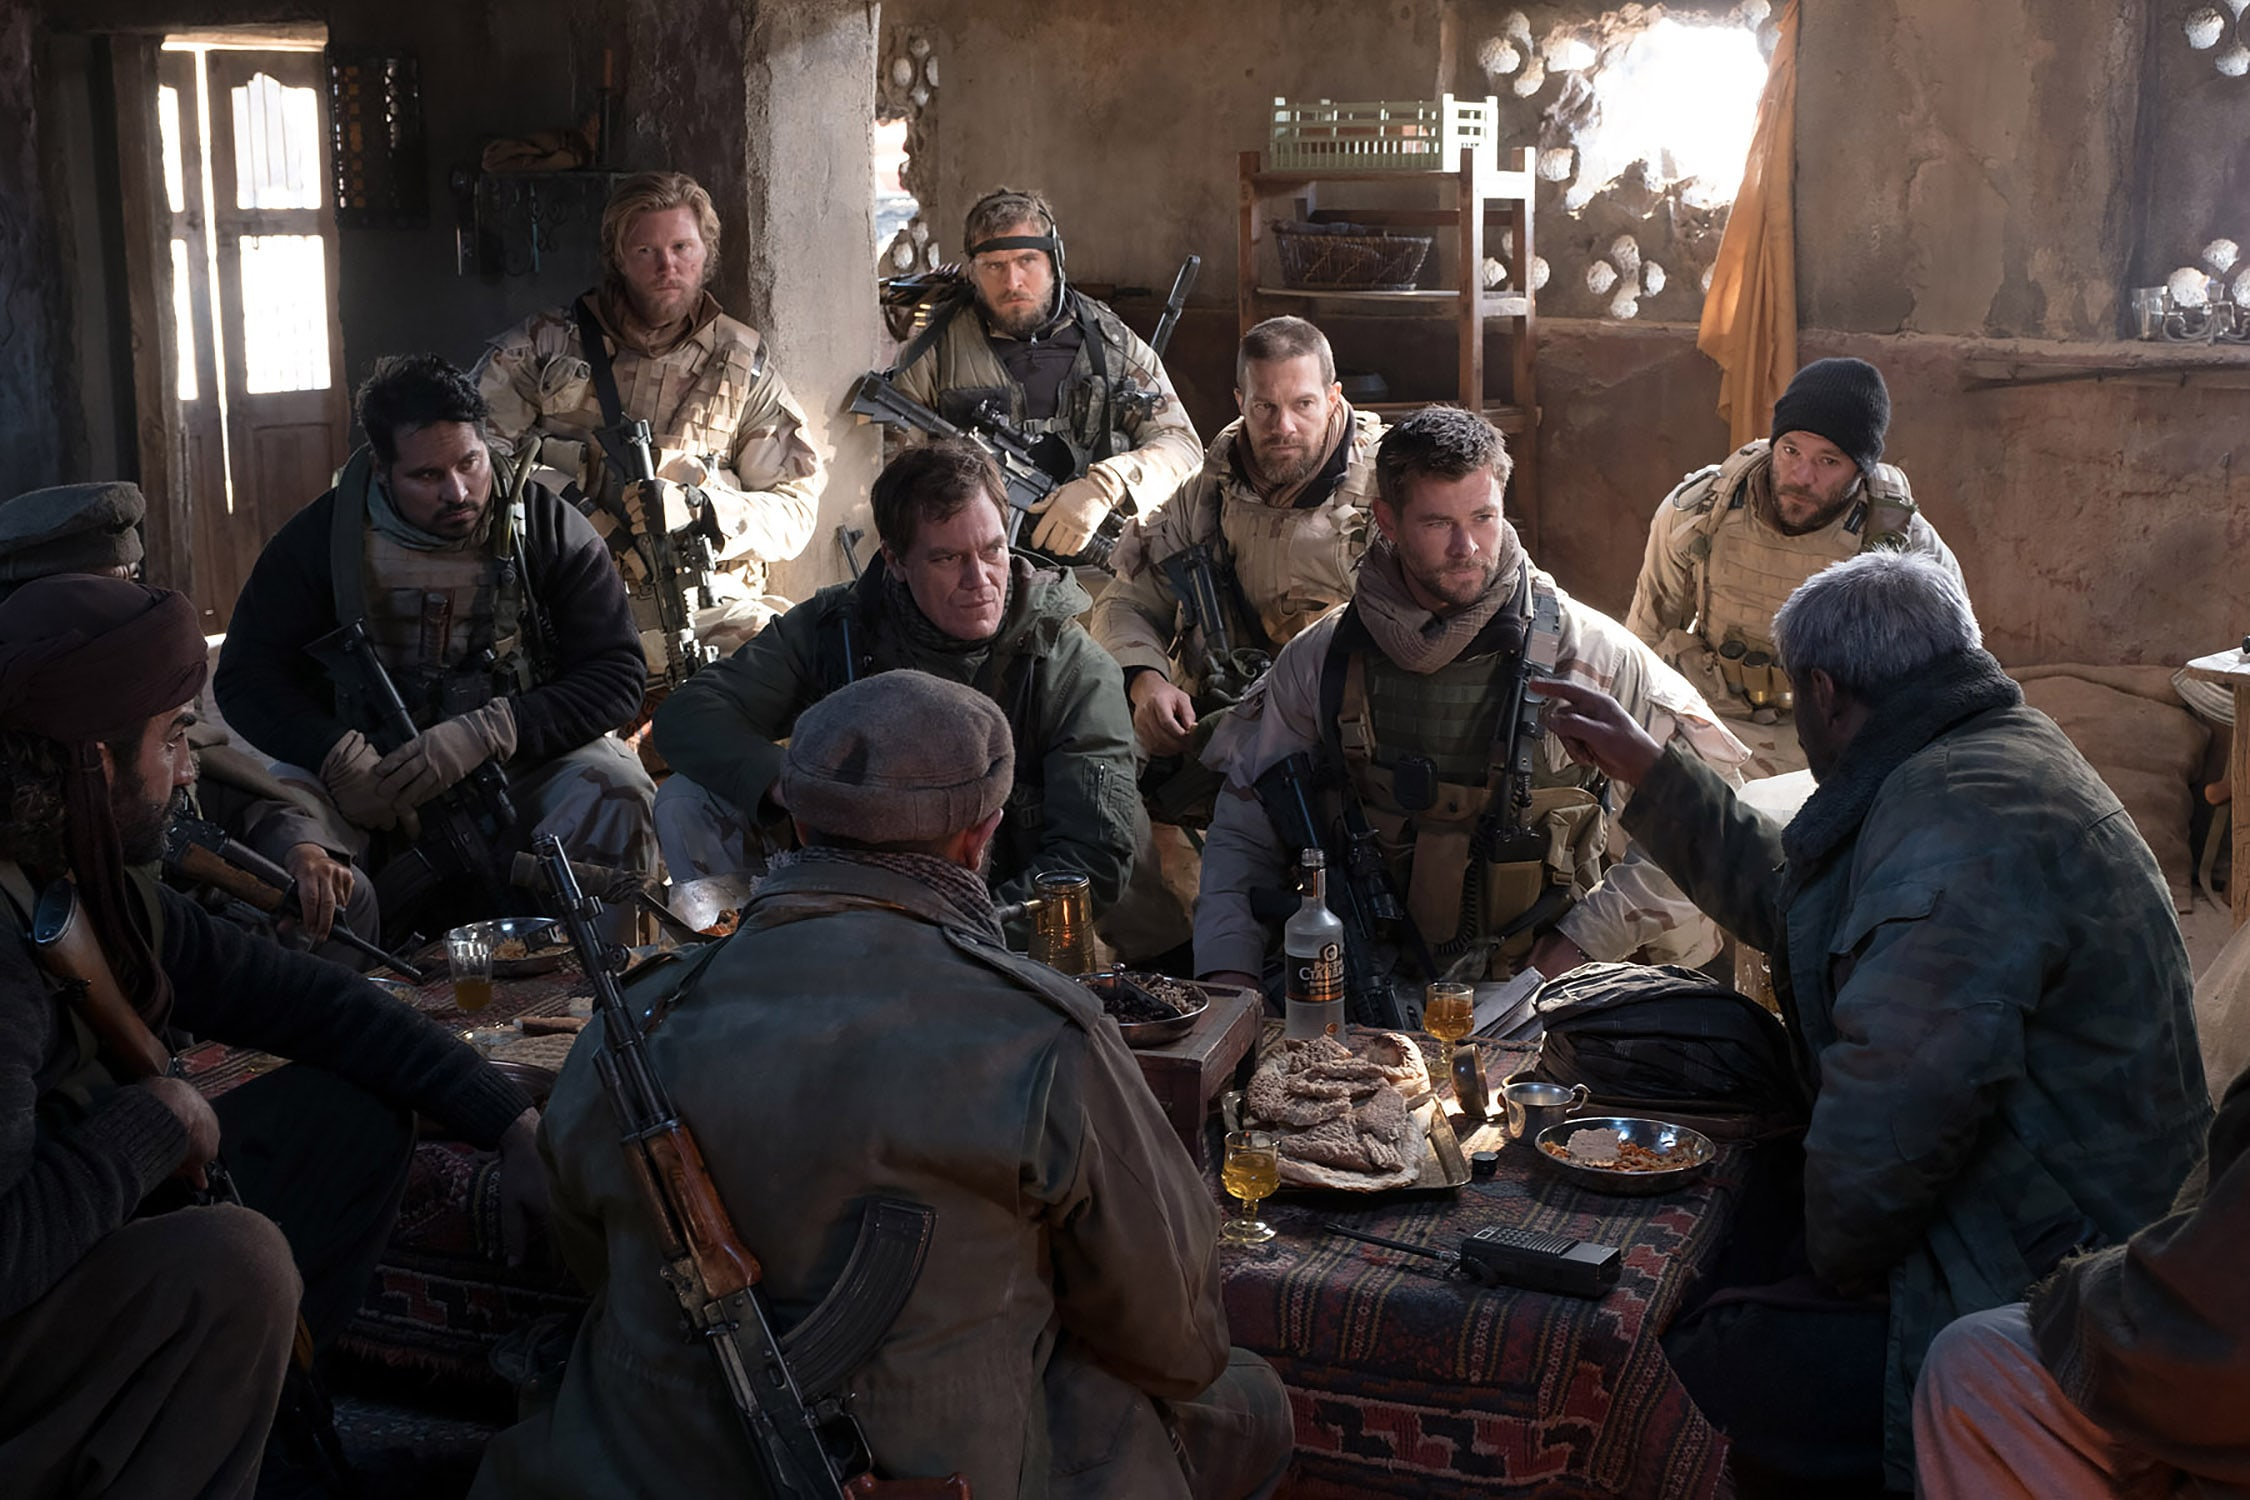 "(L-r) MICHAEL PEÑA as Sam Diller, THAD LUCKINBILL as Vern Michaels, MICHAEL SHANNON as Cal Spencer, JACK KESY as Charles Jones, GEOFF STULTS as Sean Coffers, CHRIS HEMSWORTH as Captain Nelson and AUSTIN HÉBERT as Pat Essex in Jerry Bruckheimer Films', Black Label Media' and Alcon Entertainment's war drama ""12 STRONG,"" a Warner Bros. Pictures release. Photo by David James"